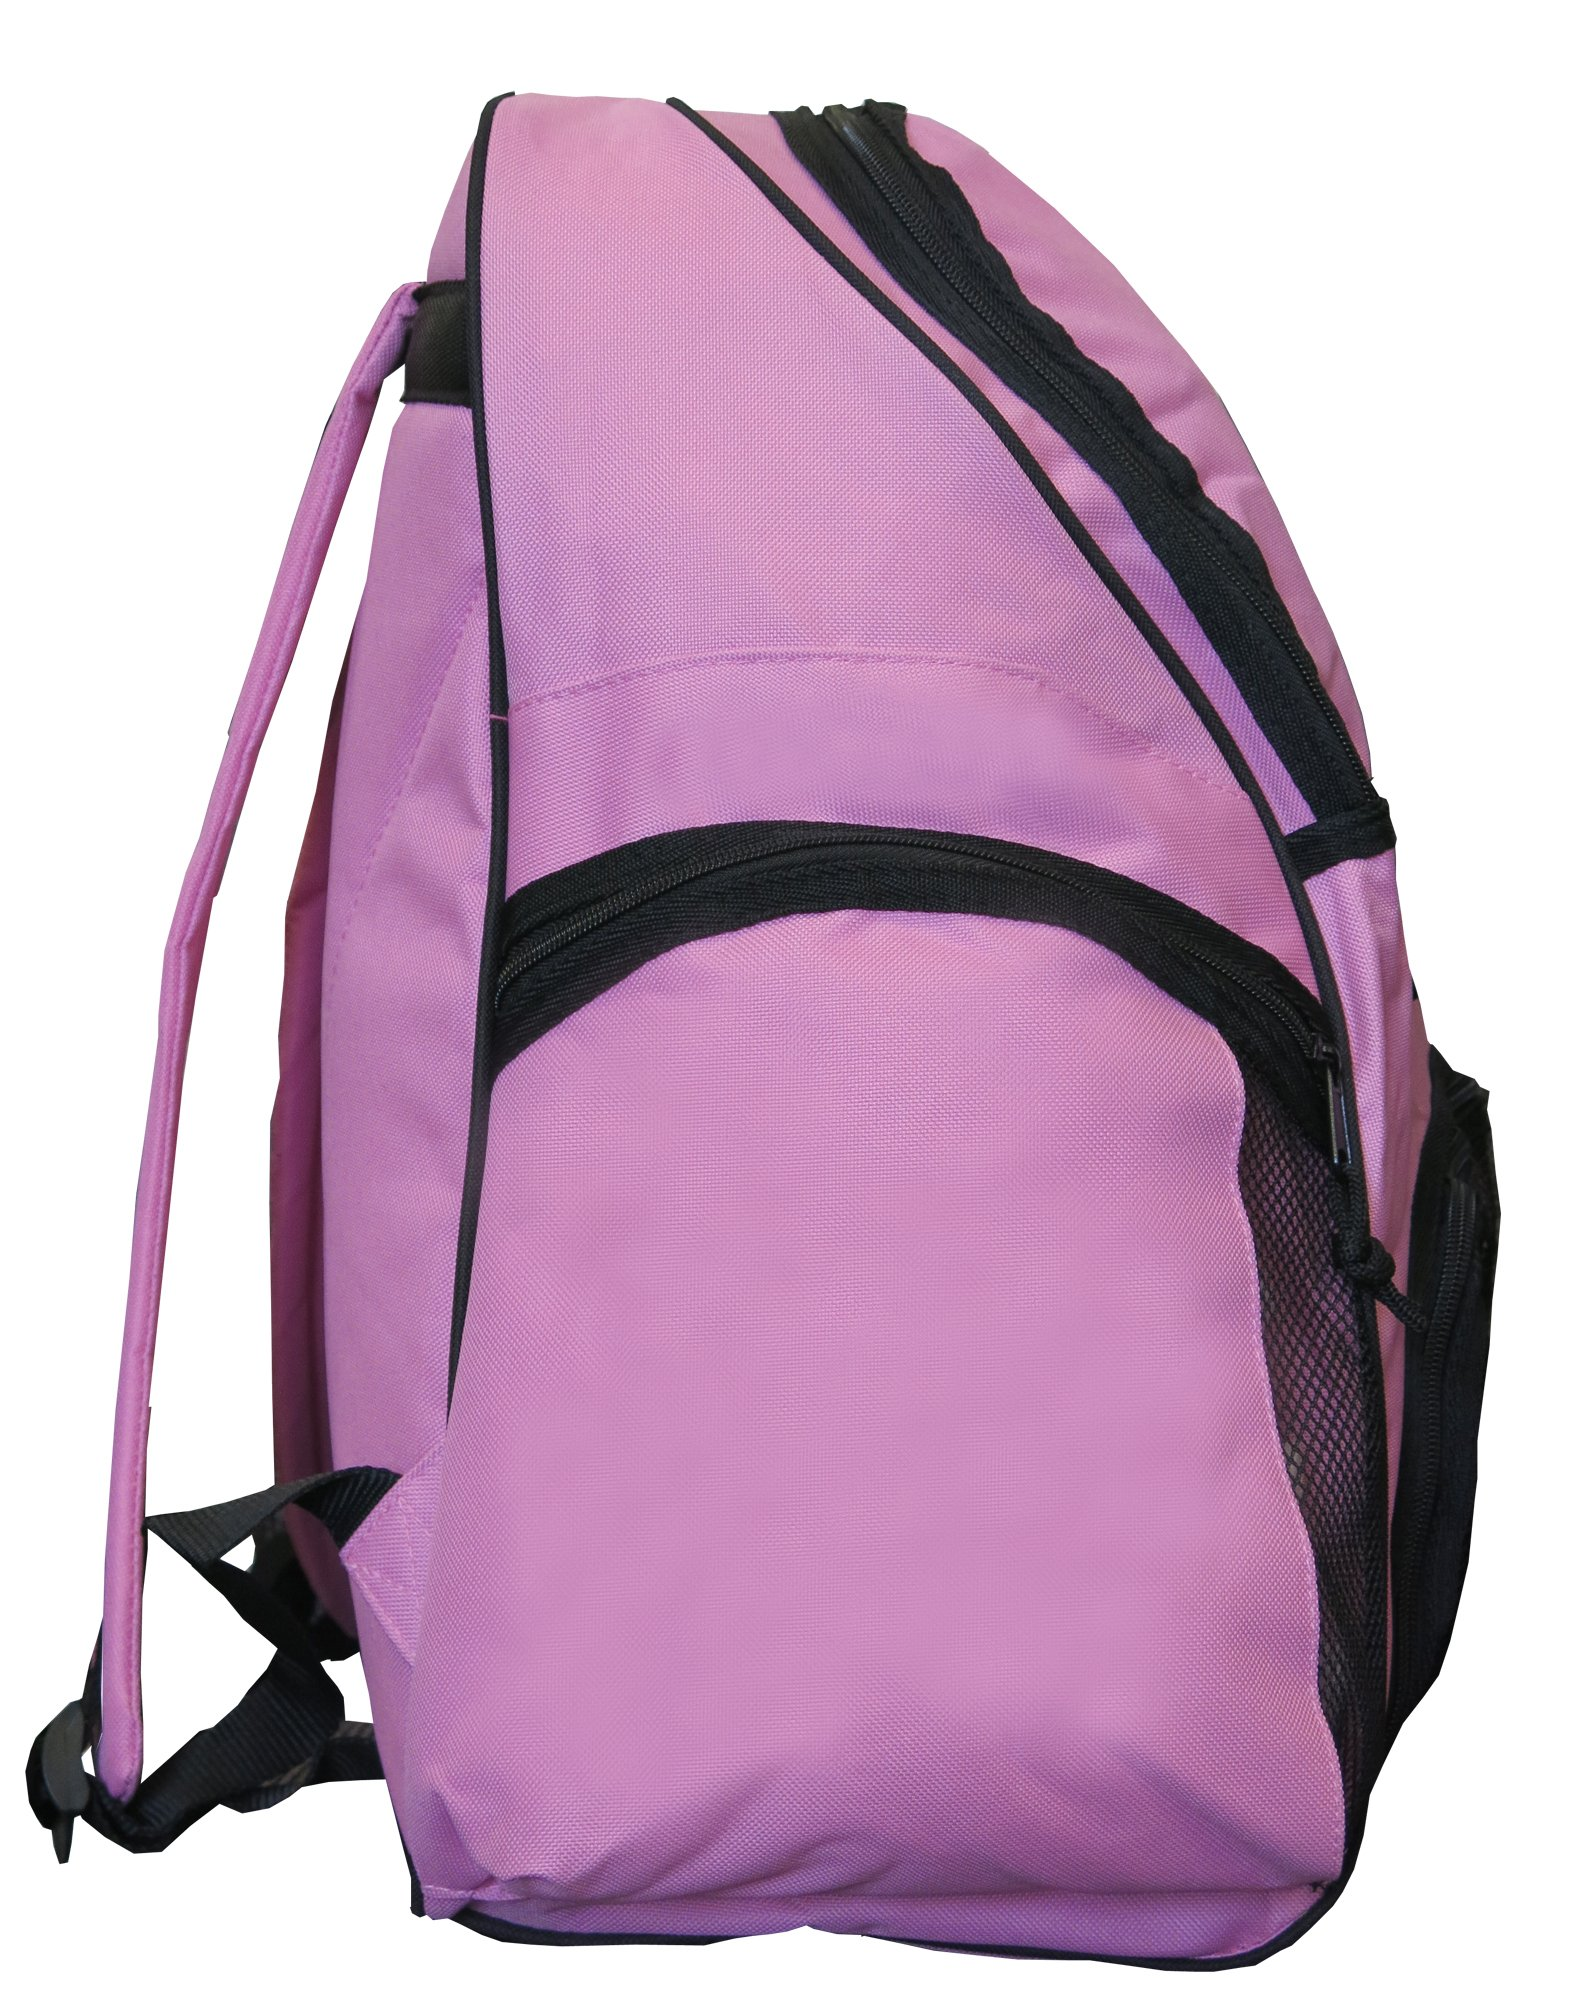 Broad Bay Girls University of Alabama Soccer Ball Backpack or Volleyball Bag Ball Carrier by Broad Bay (Image #4)